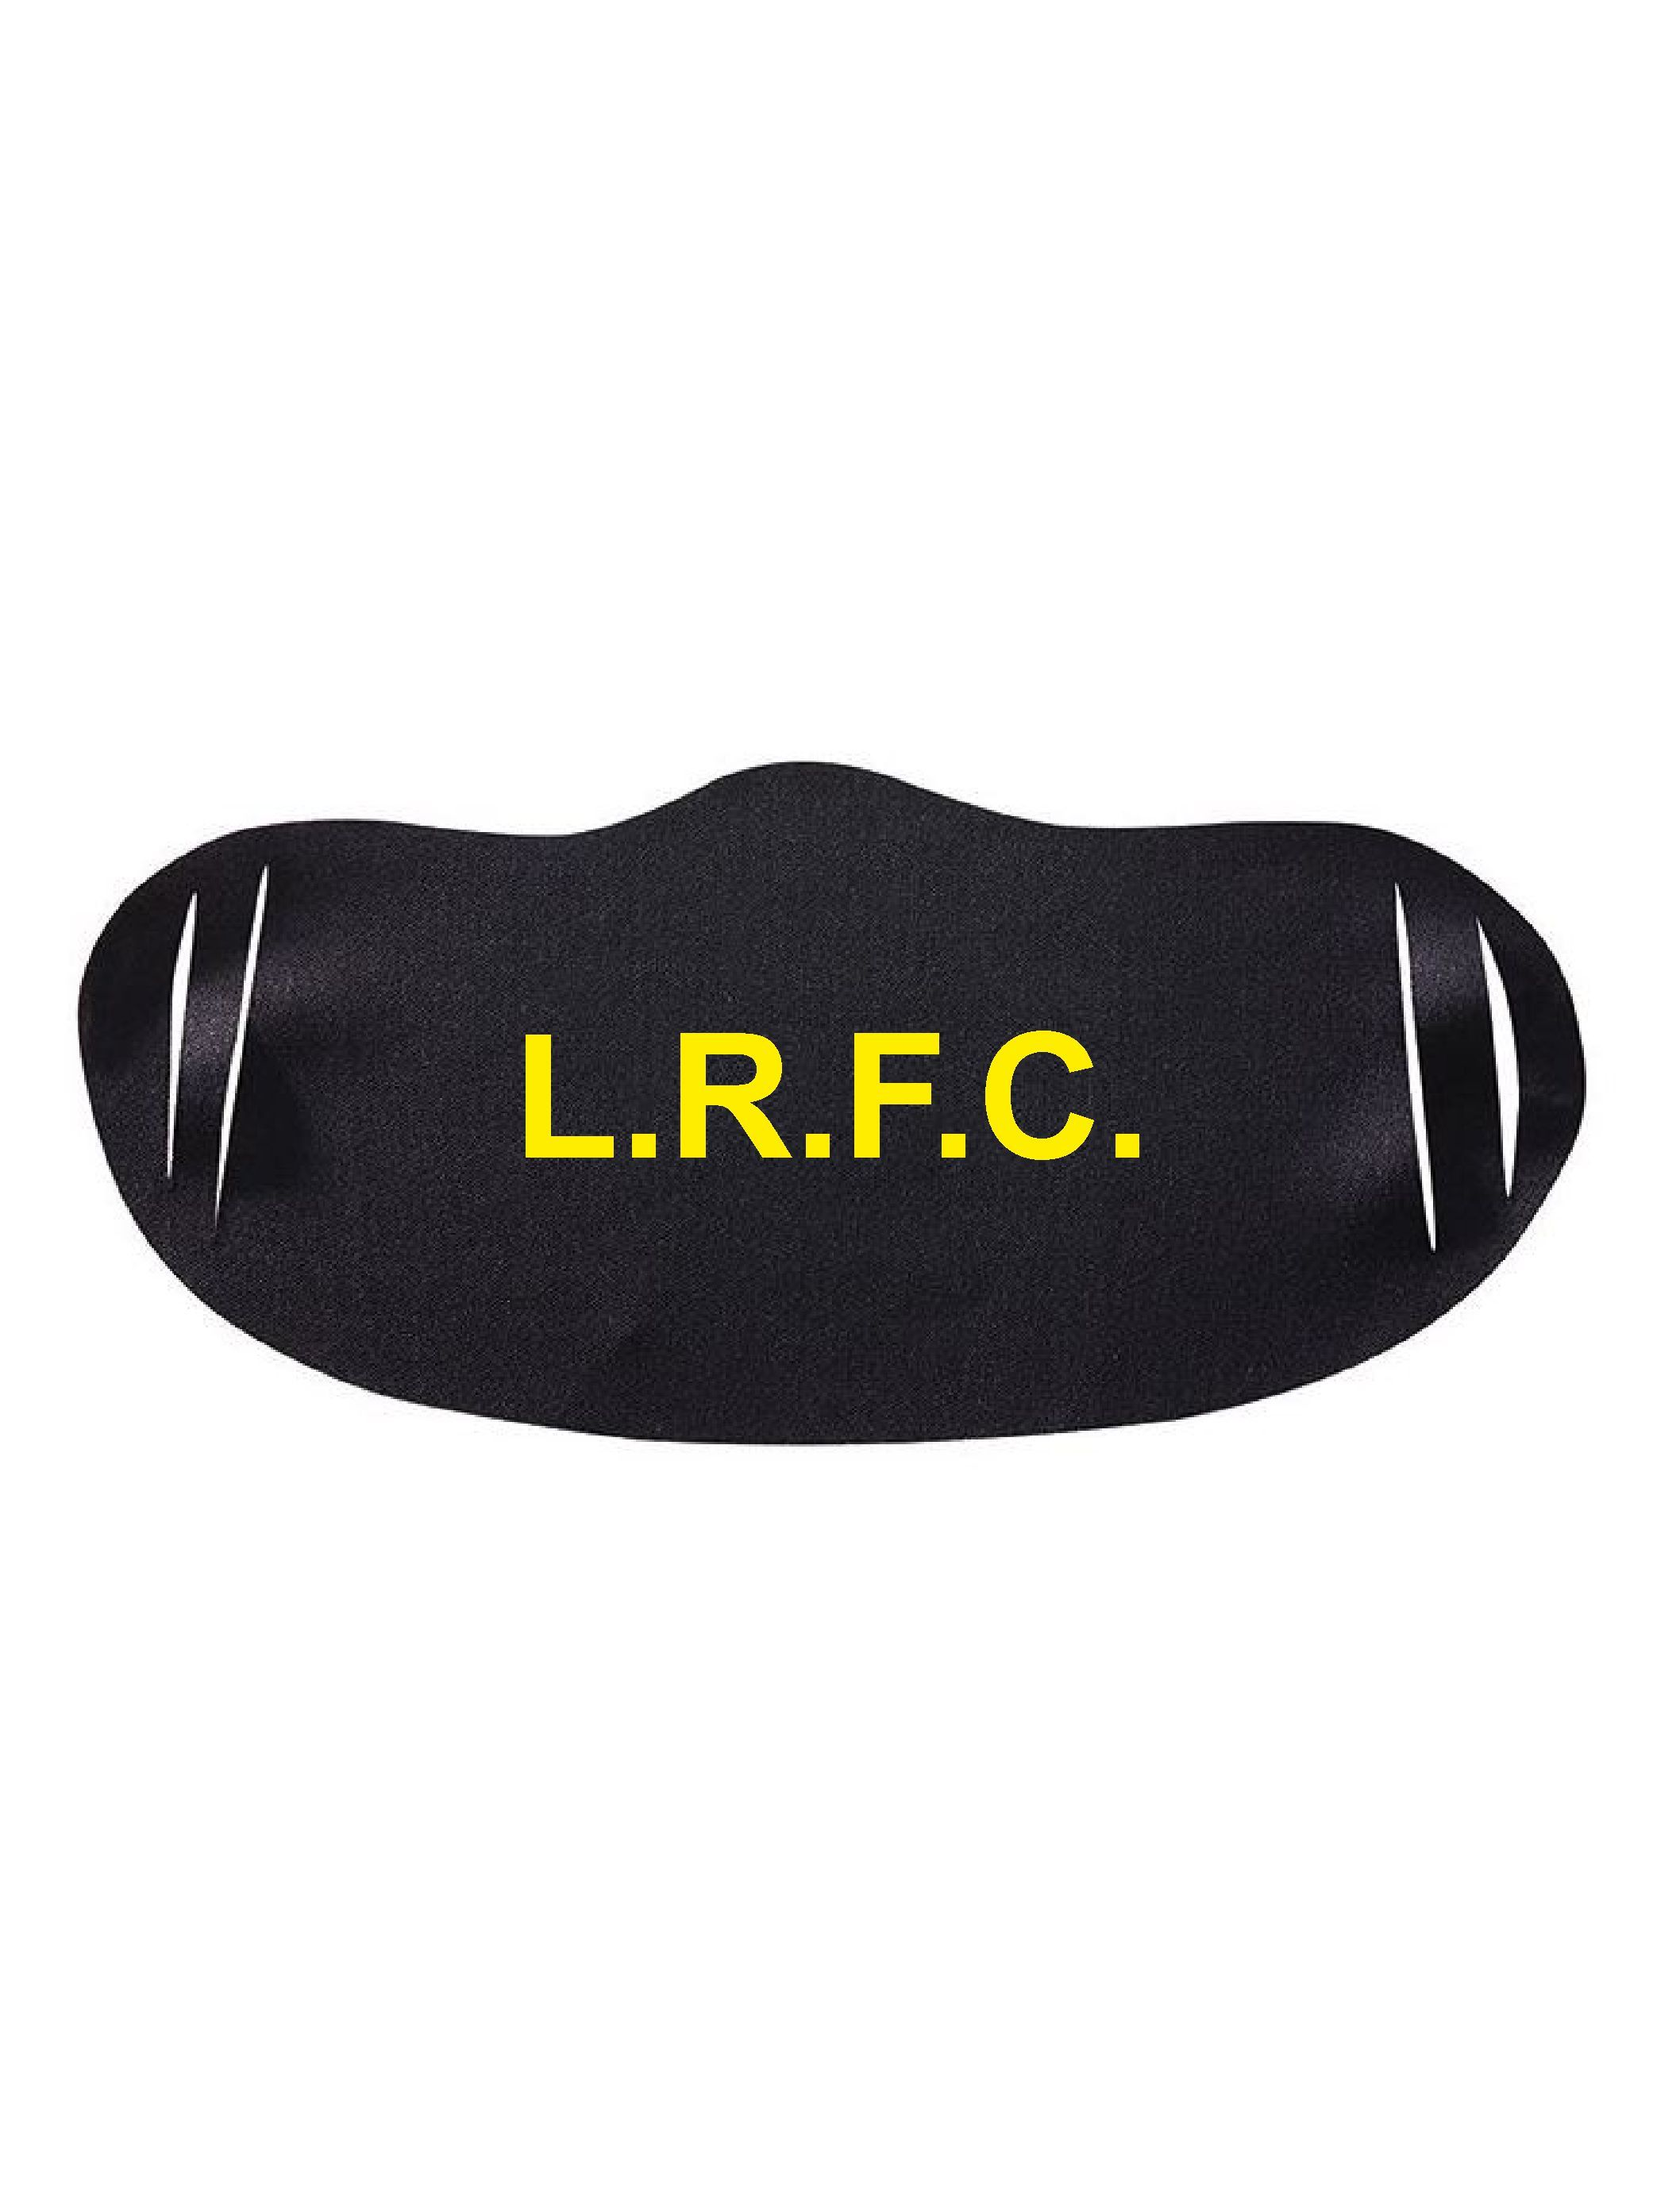 Littleport Rangers - Face Covers (Pack of x10)